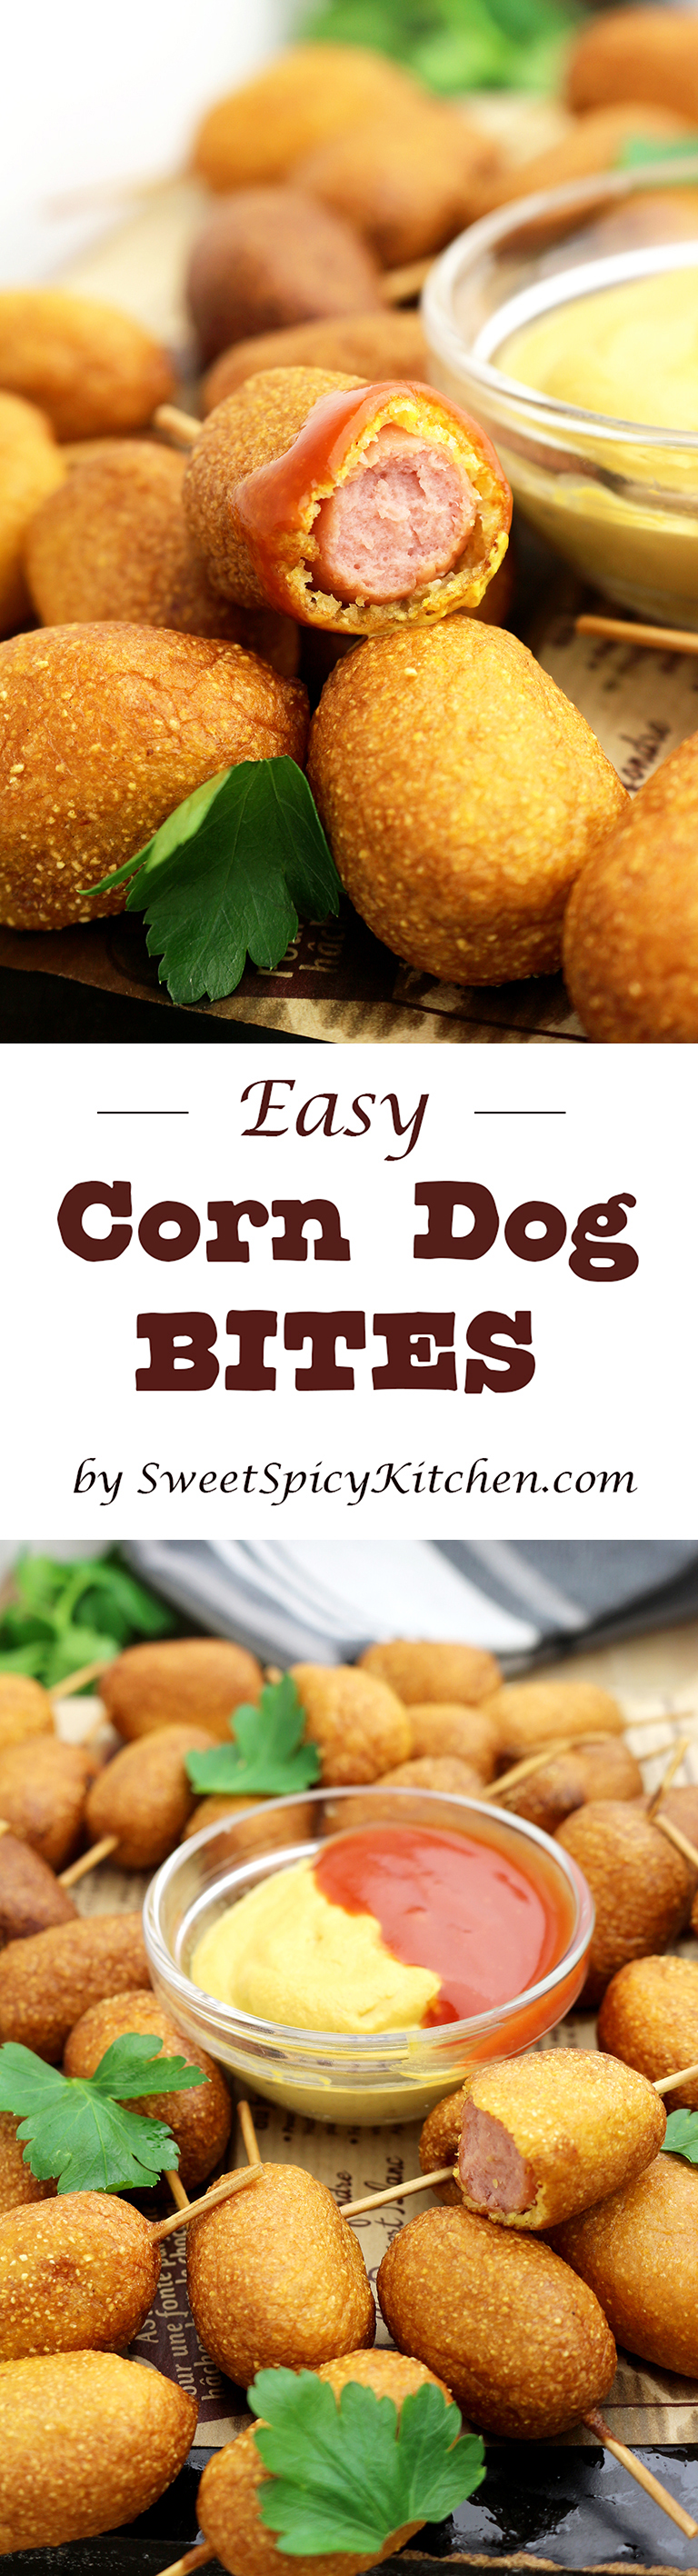 Easy Corn Dog Bites